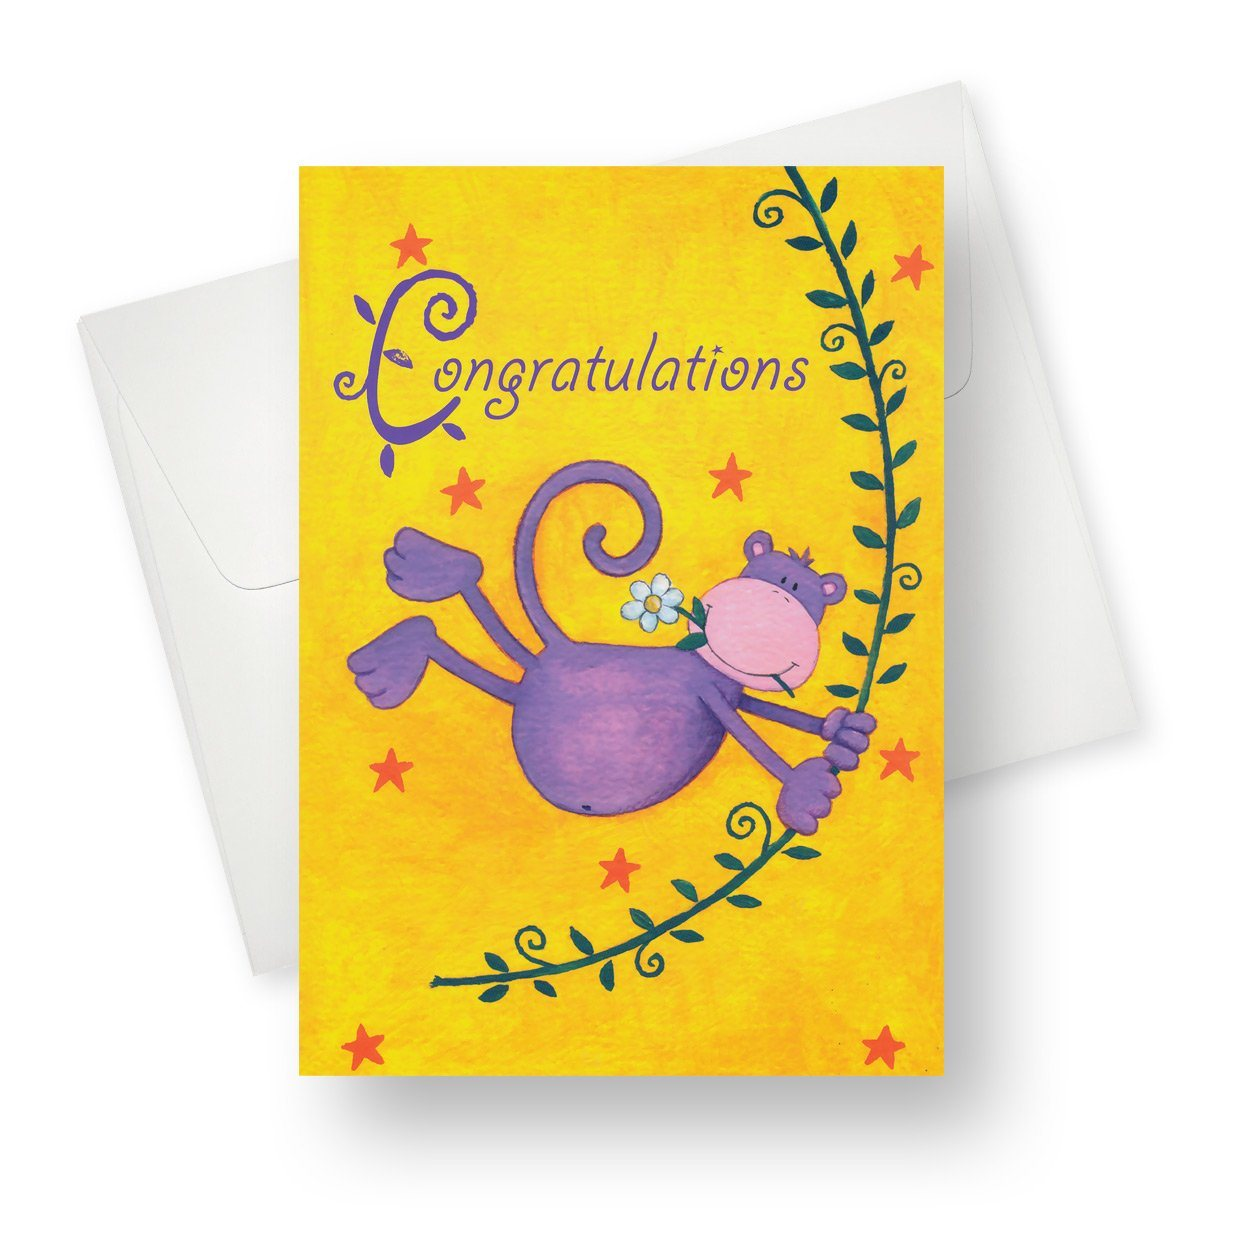 'Swinging Monkey' Congratulations Card - Northern Cards